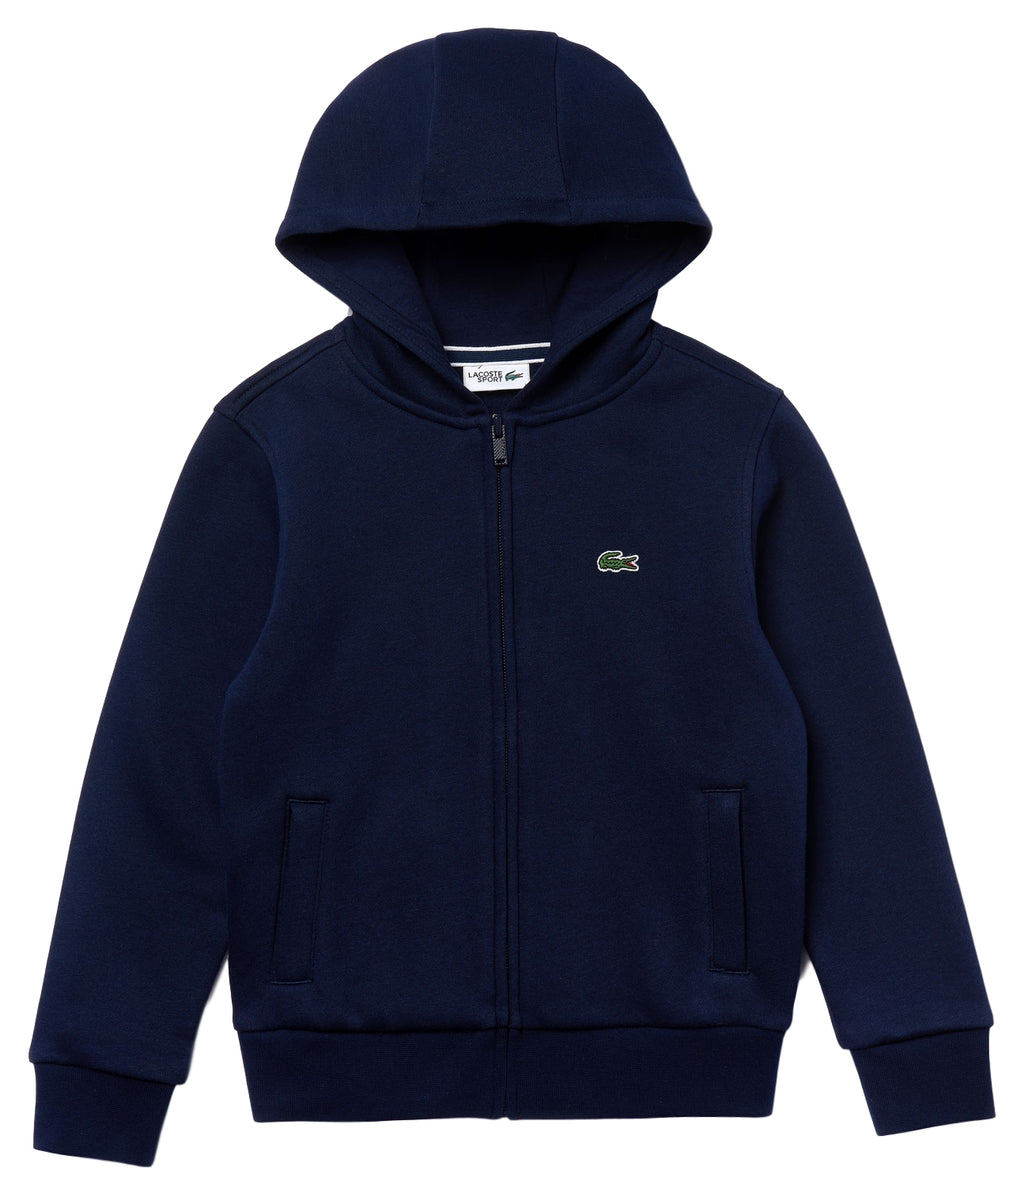 Lacoste Full-Zip Fleece Sweater